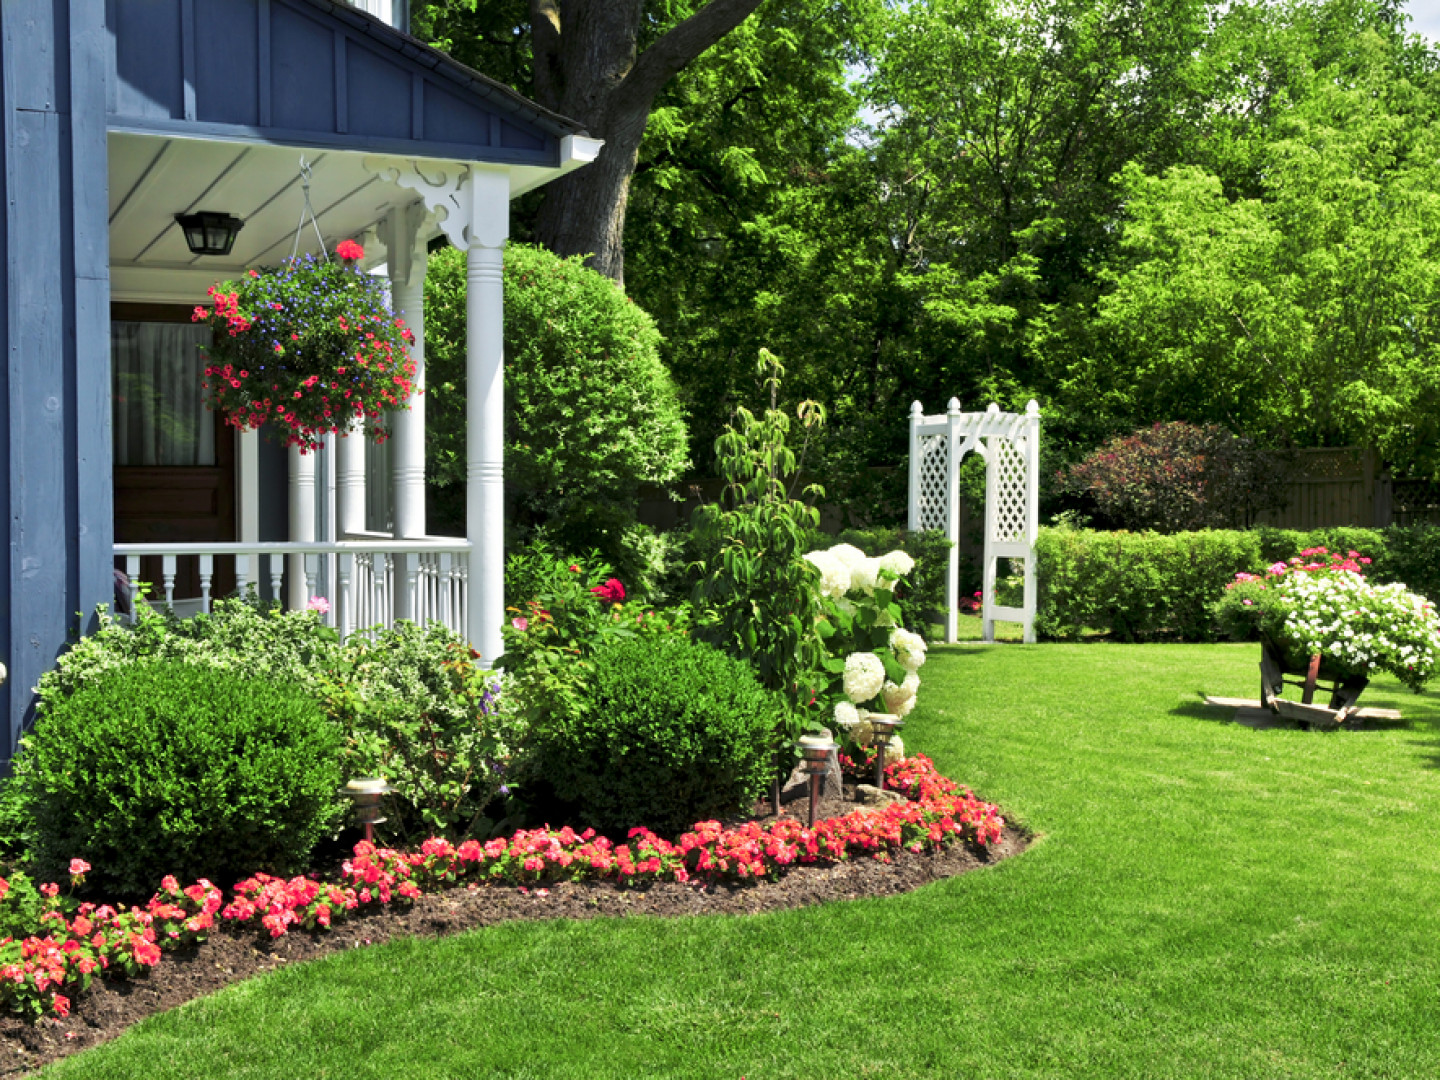 Your dream yard is closer than you think